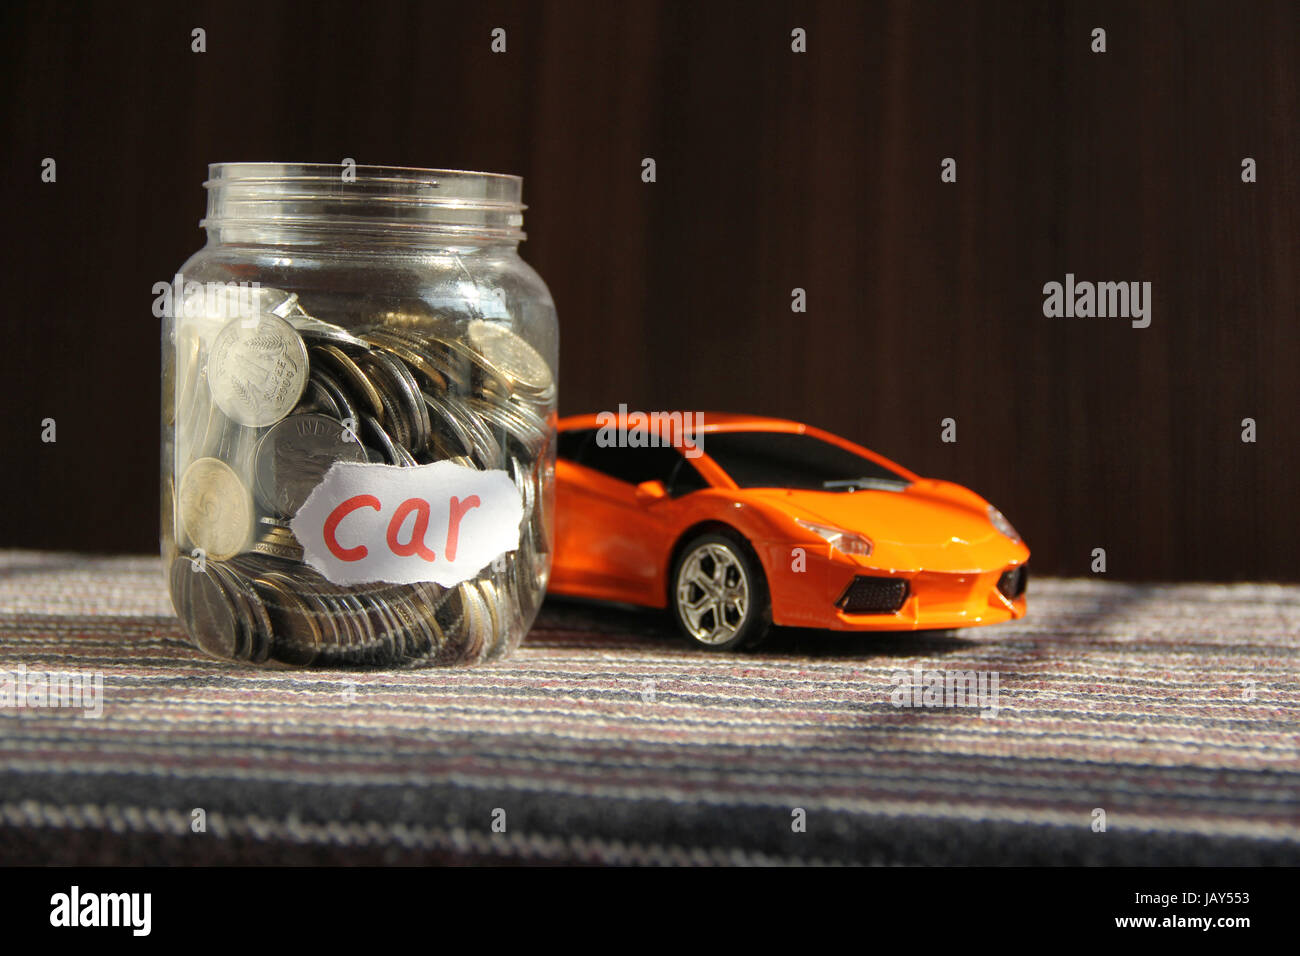 Coins in money jar with car label, finance concept Stock Photo